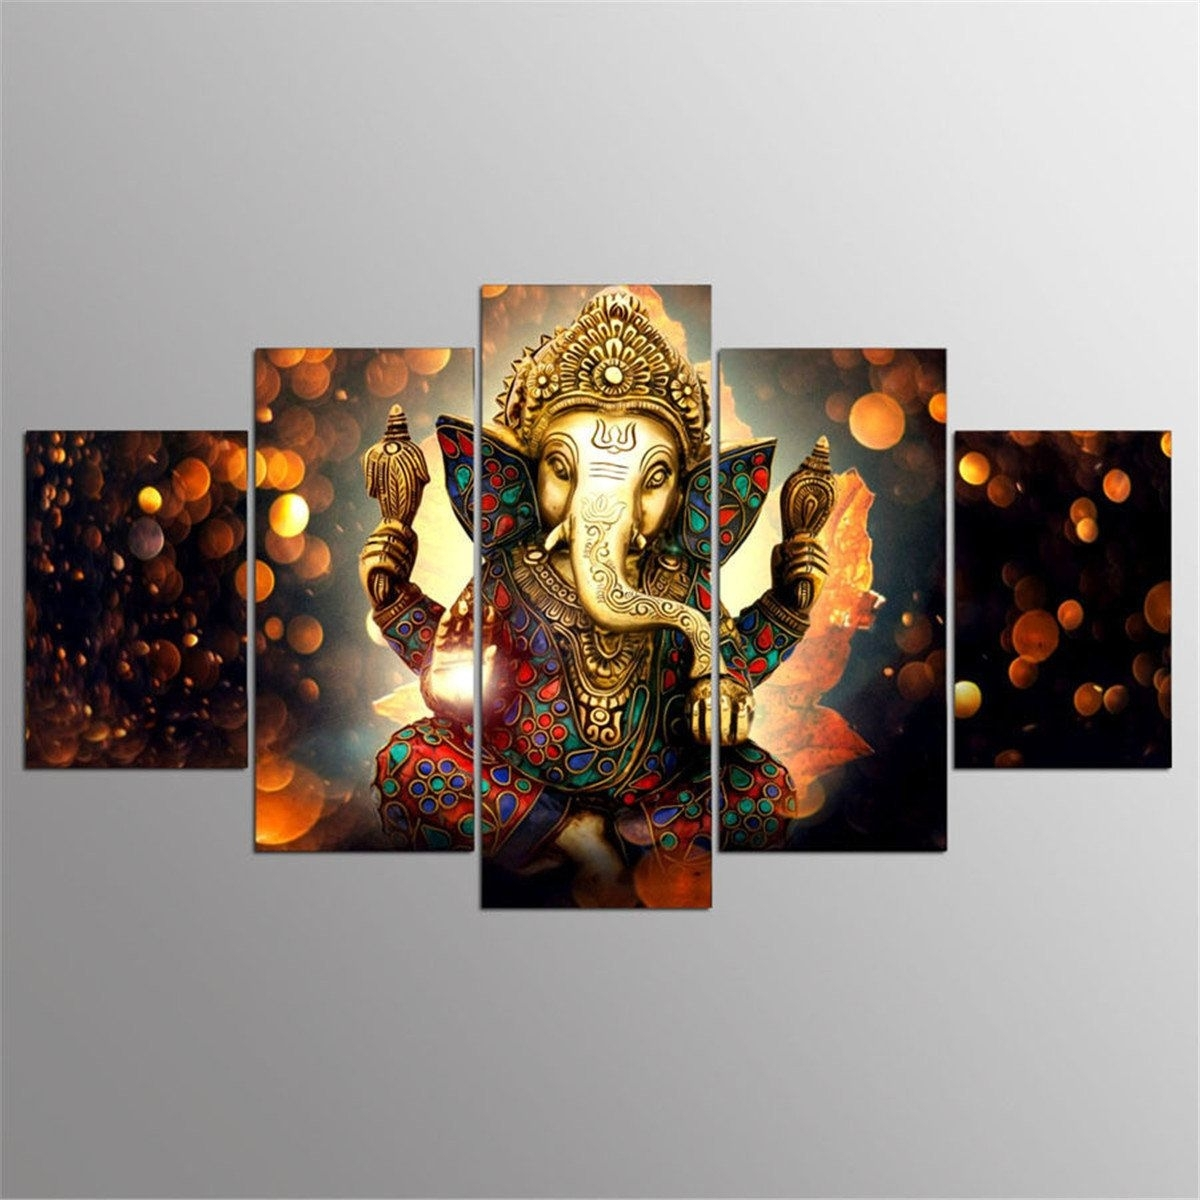 5Pcs Ganesha Painting Abstract Print Modern Canvas Wall Art Poster Intended For Latest Modern Wall Art Decors (View 4 of 20)